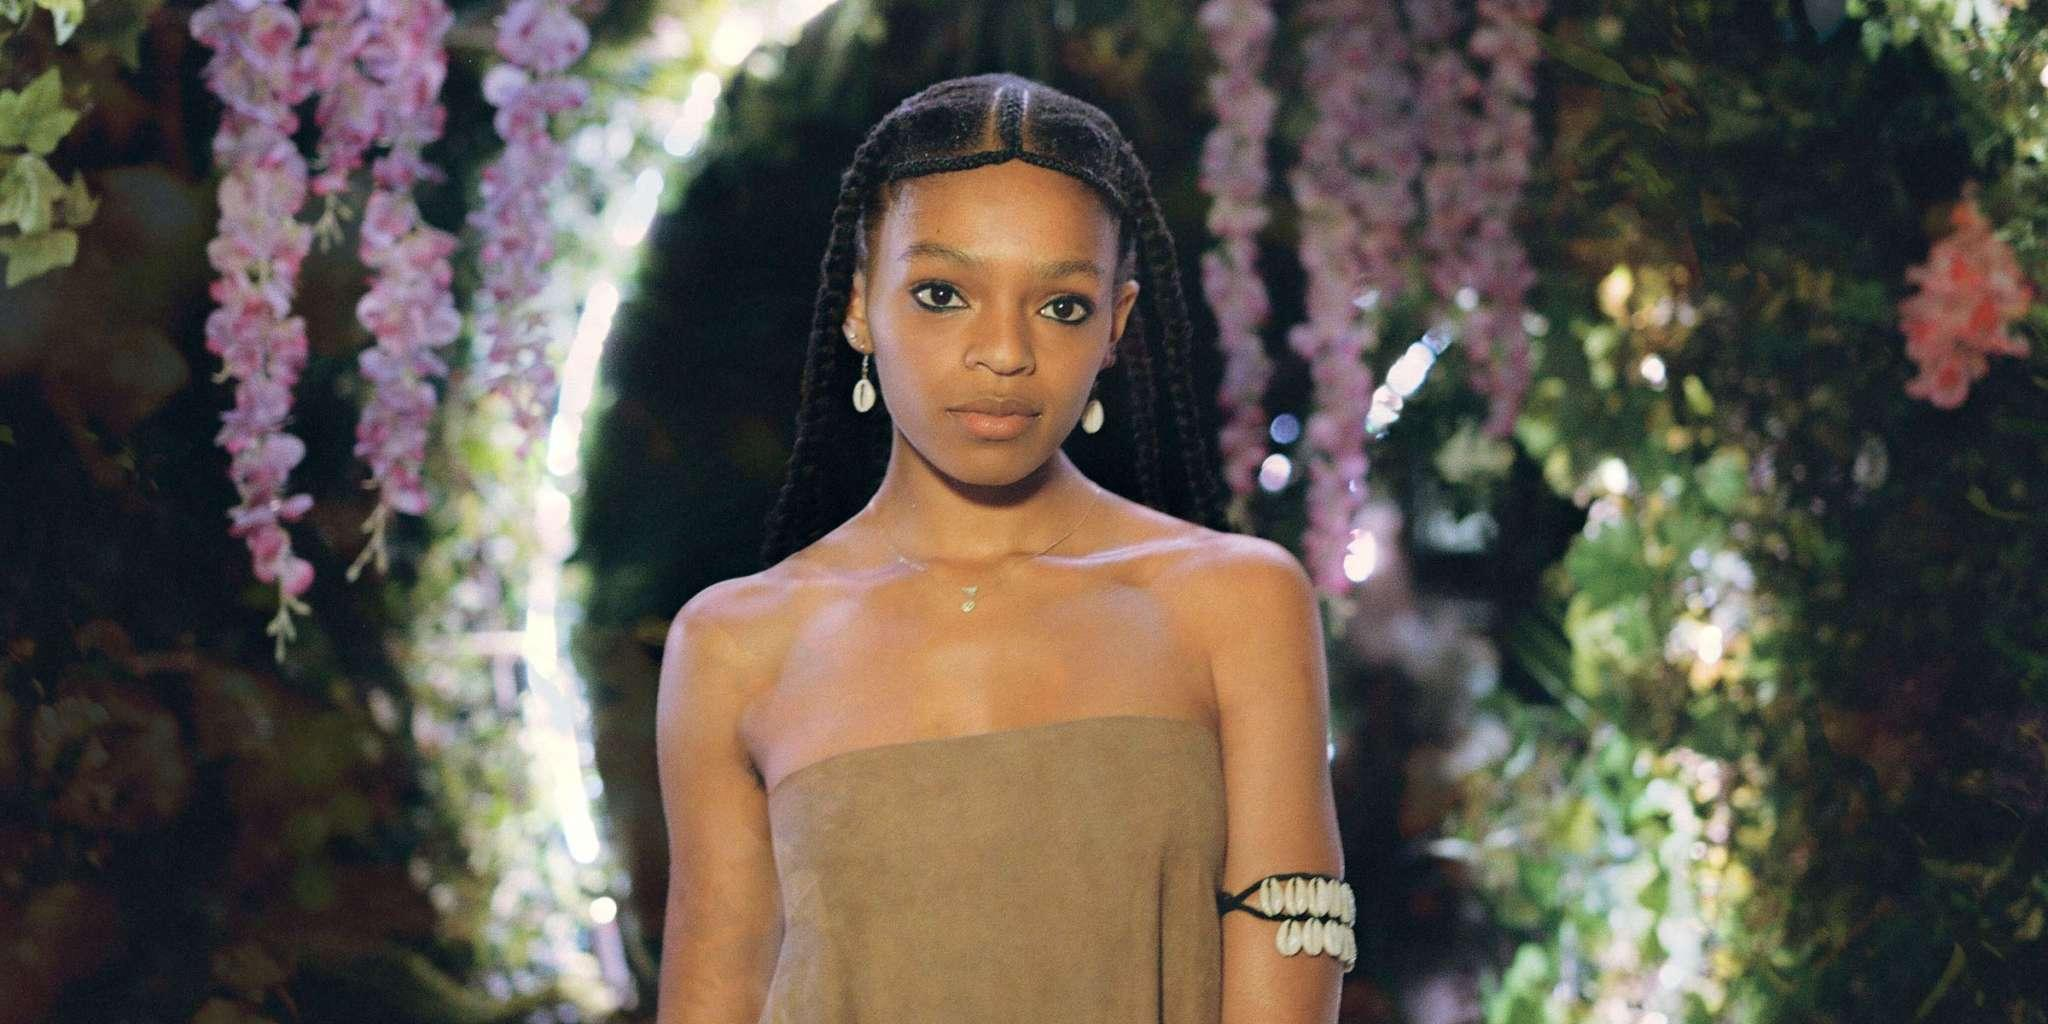 Lauryn Hill's Daughter, Selah Marley, Accuses Rihanna Of Ripping Off Her Idea